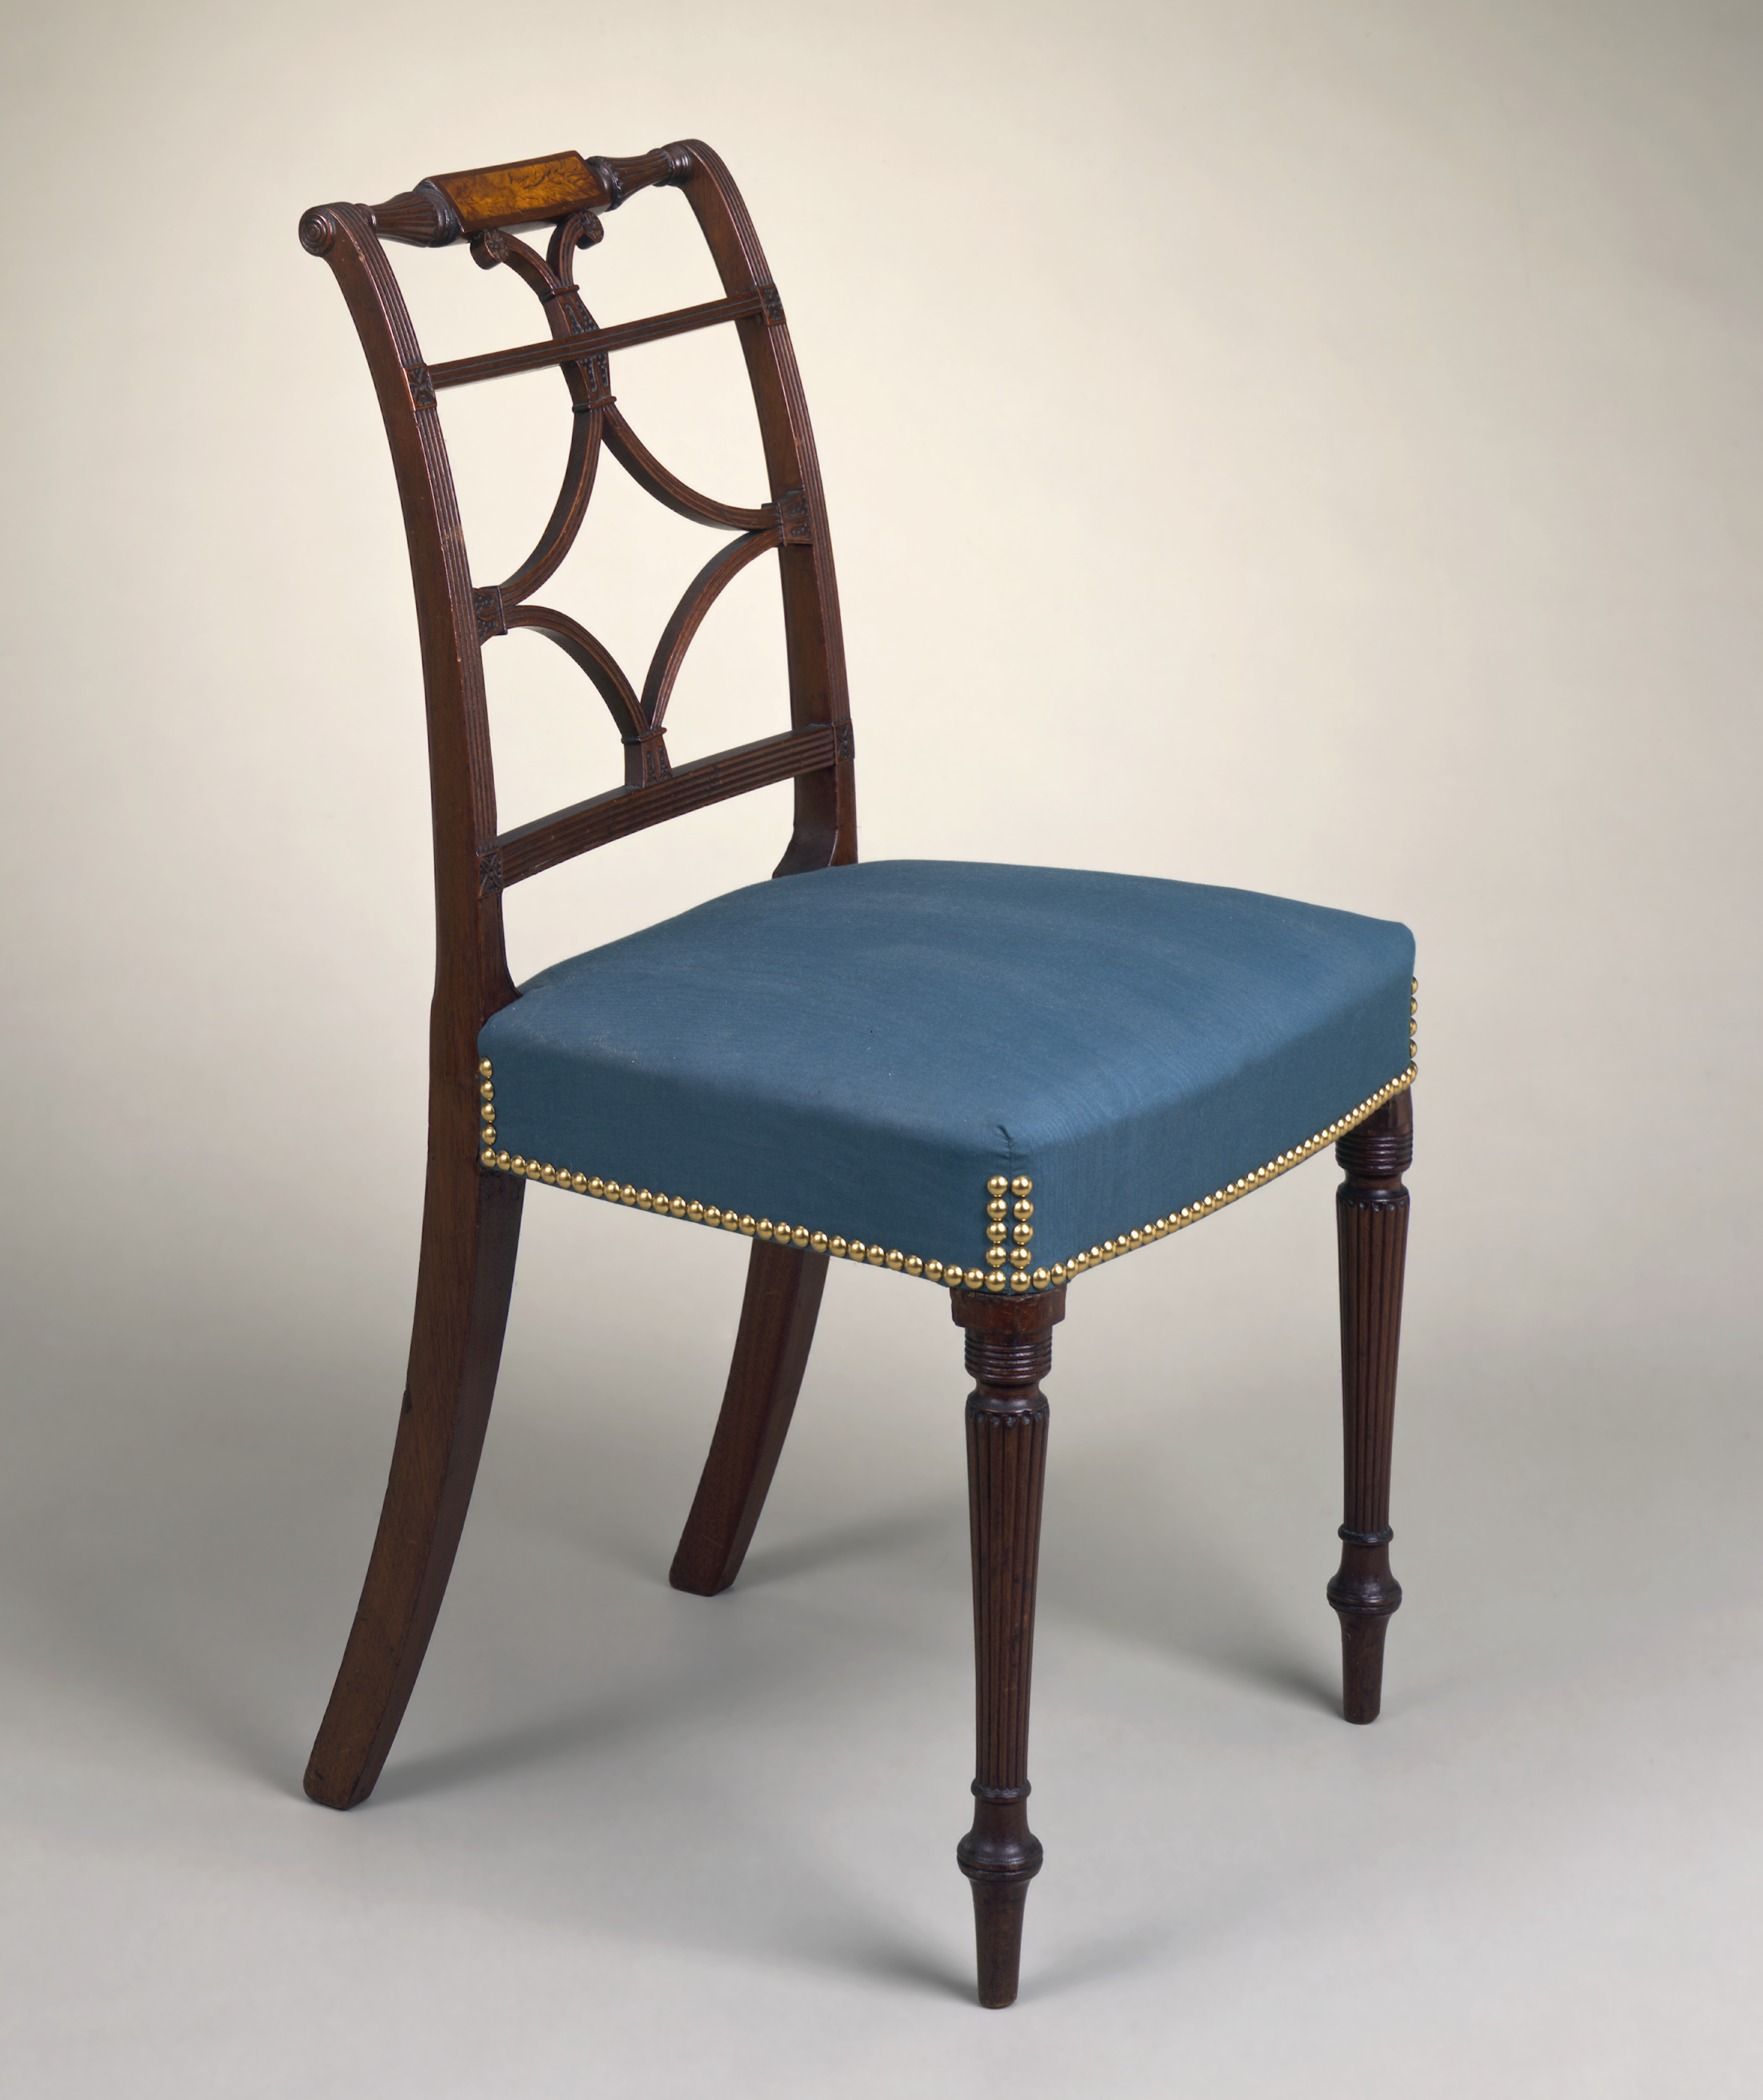 Furniture Chair Design